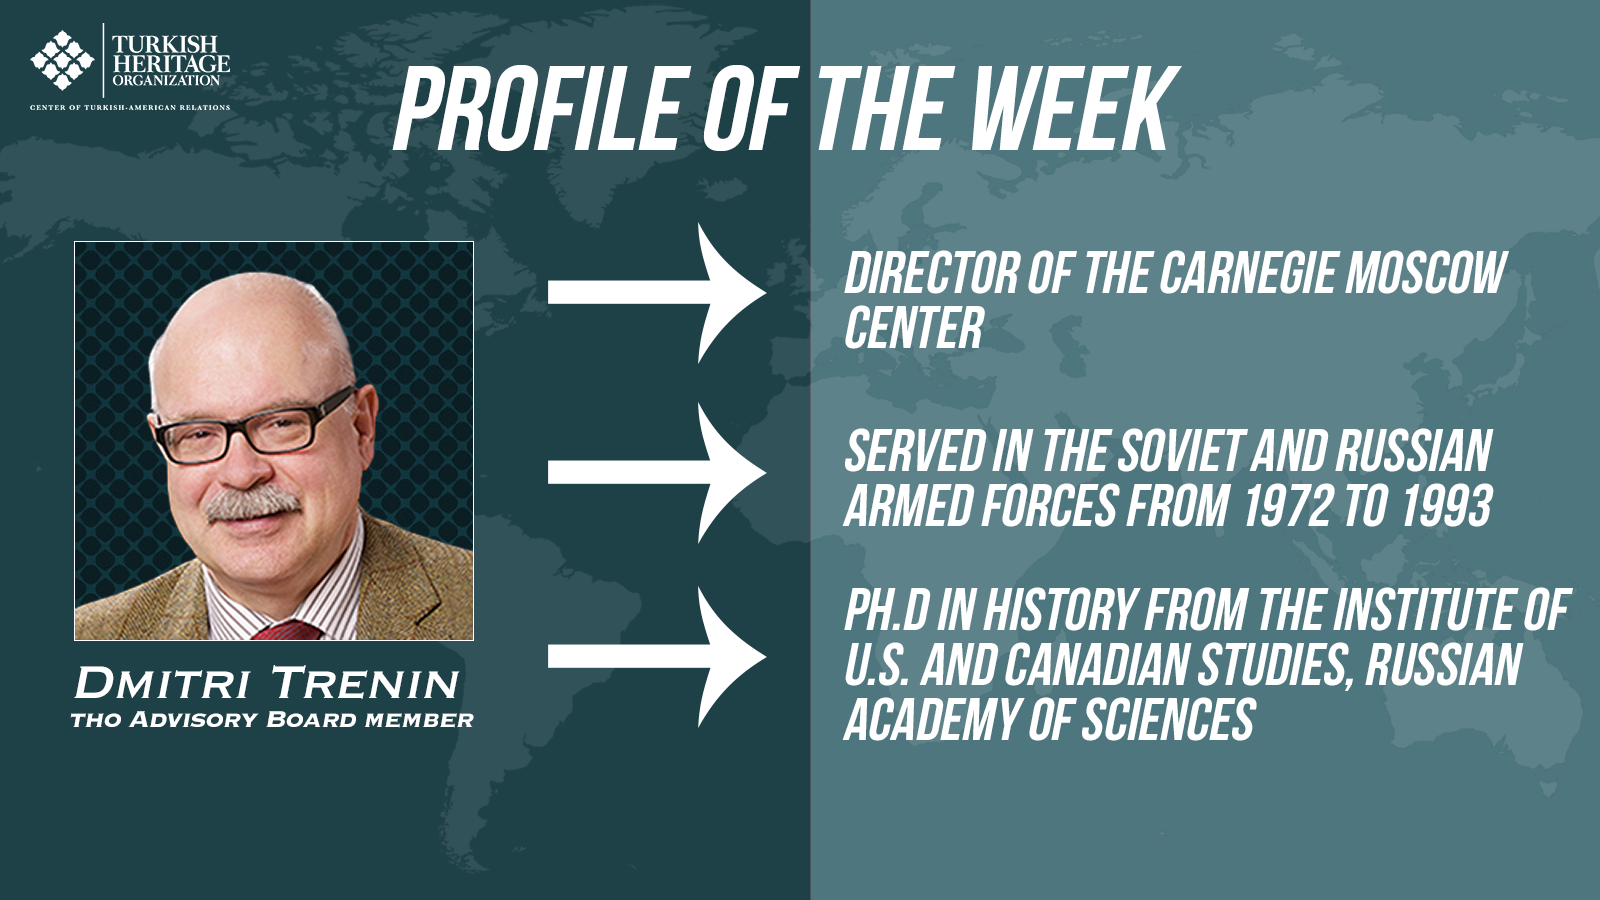 Dmitri Trenin, director of the Carnegie Moscow Center